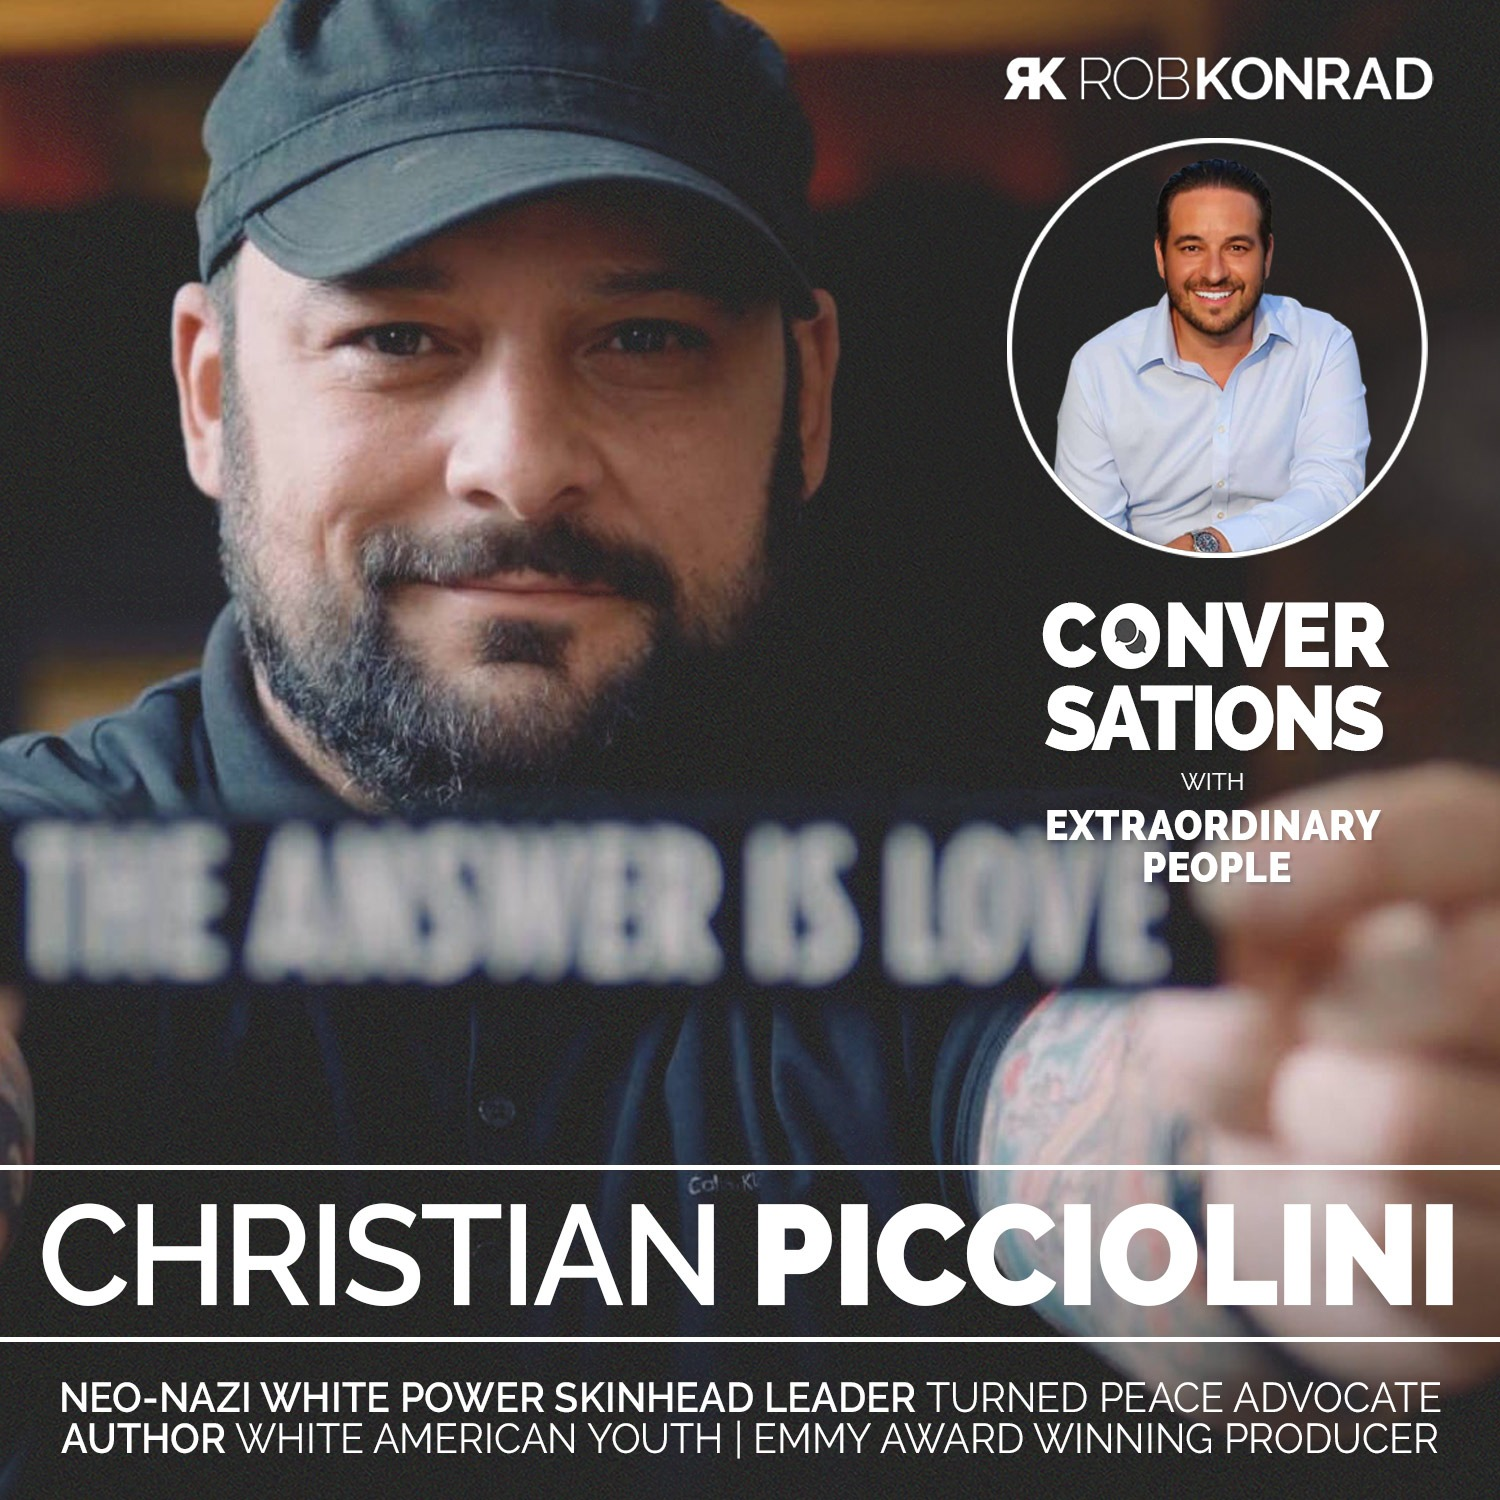 002. From Neo-Nazi Leader To Peace Advocate: Christian Picciolini